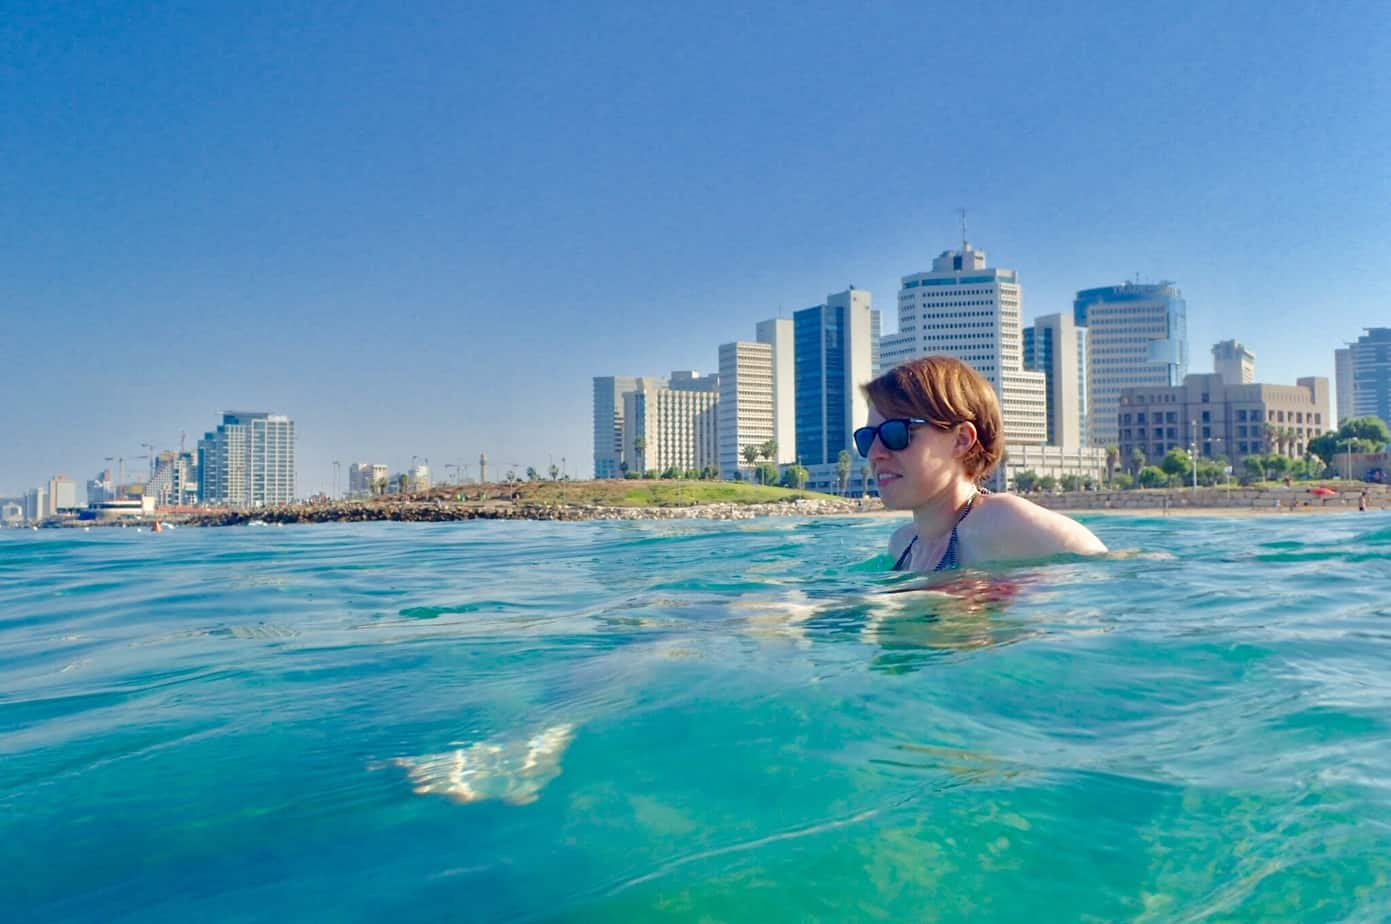 Me swimming in Tel Aviv banana beach